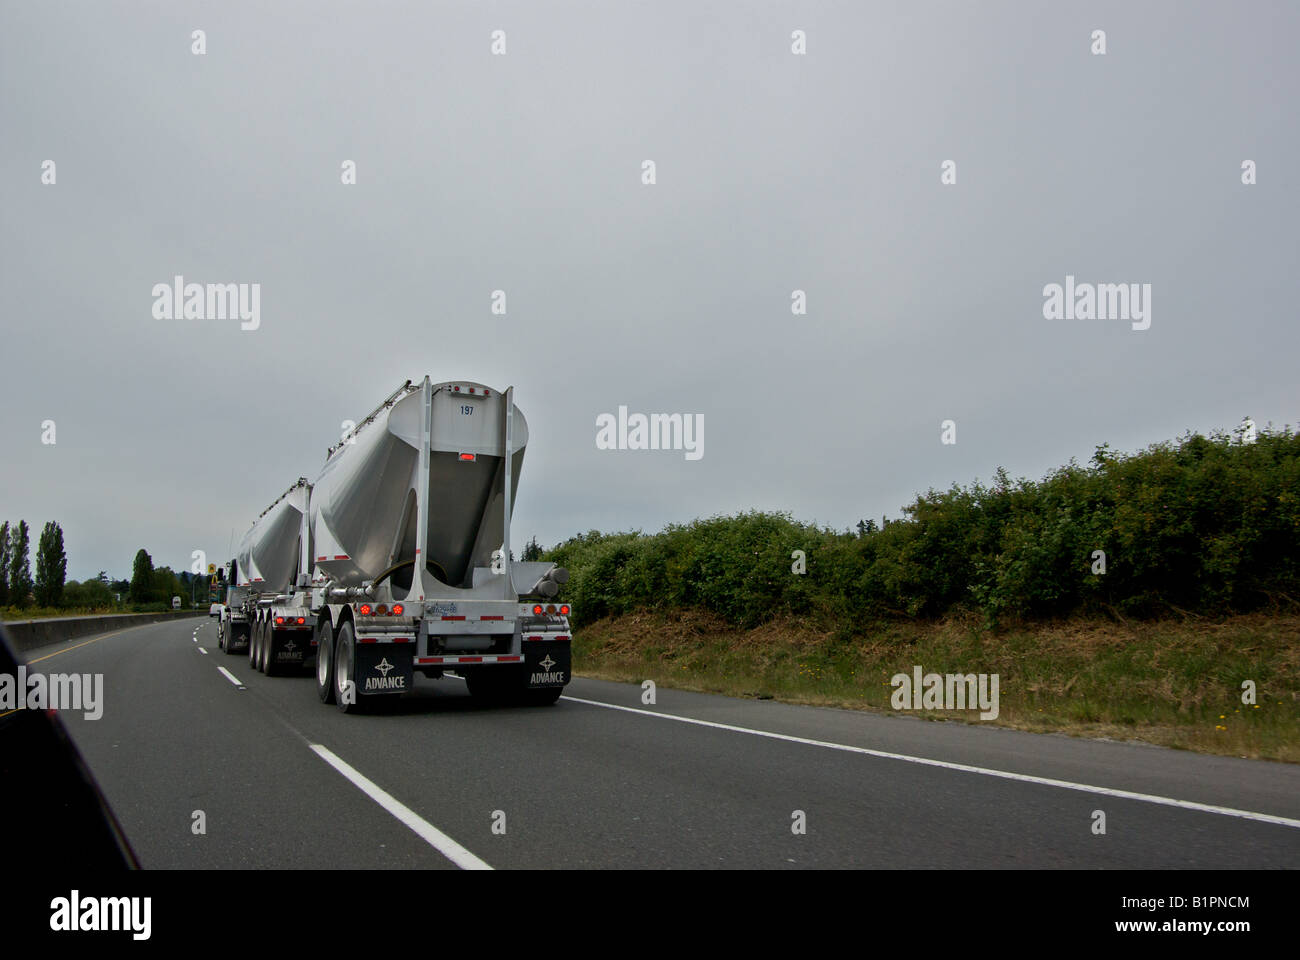 White diesel tractor truck transporter unit with double